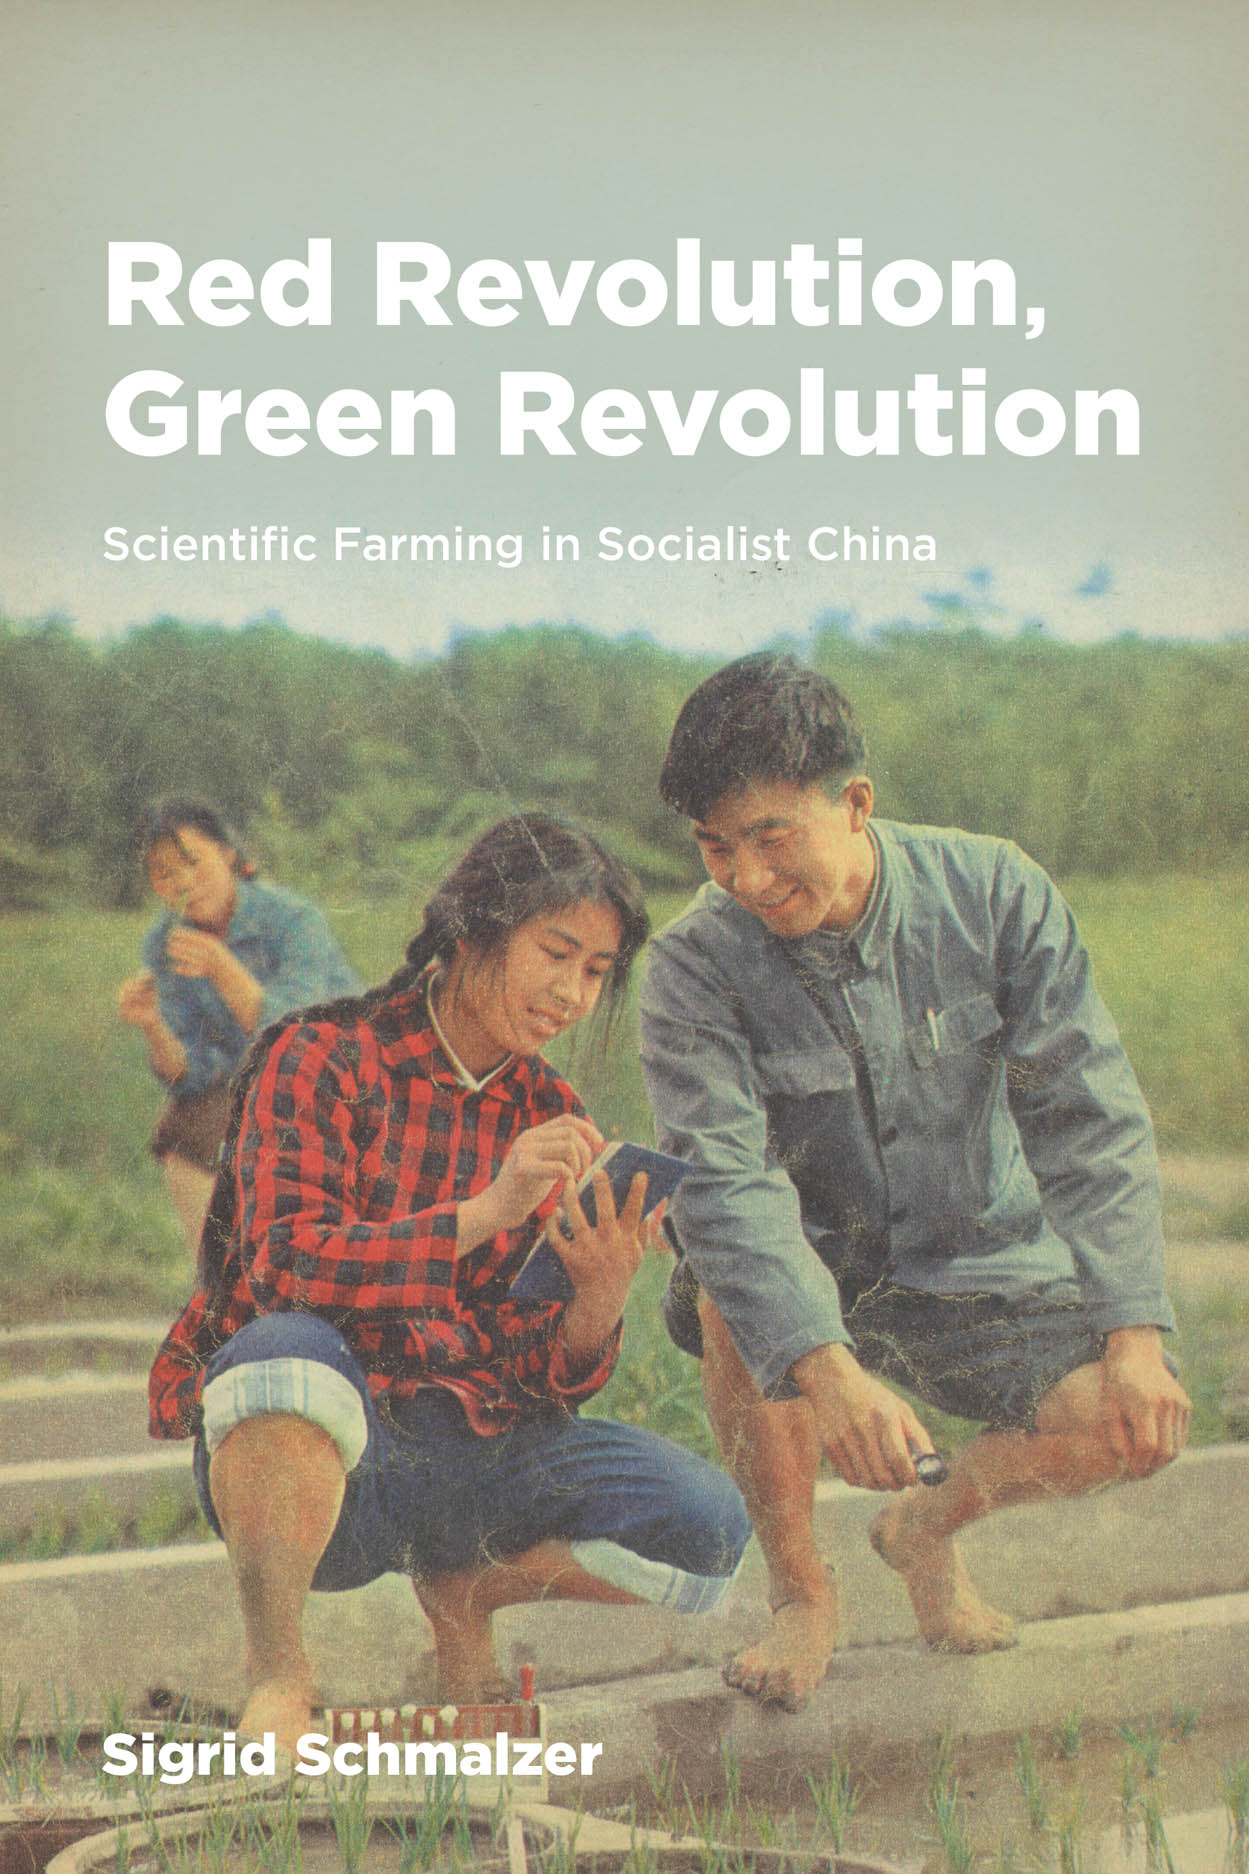 Red Revolution, Green Revolution: Scientific Farming in Socialist China